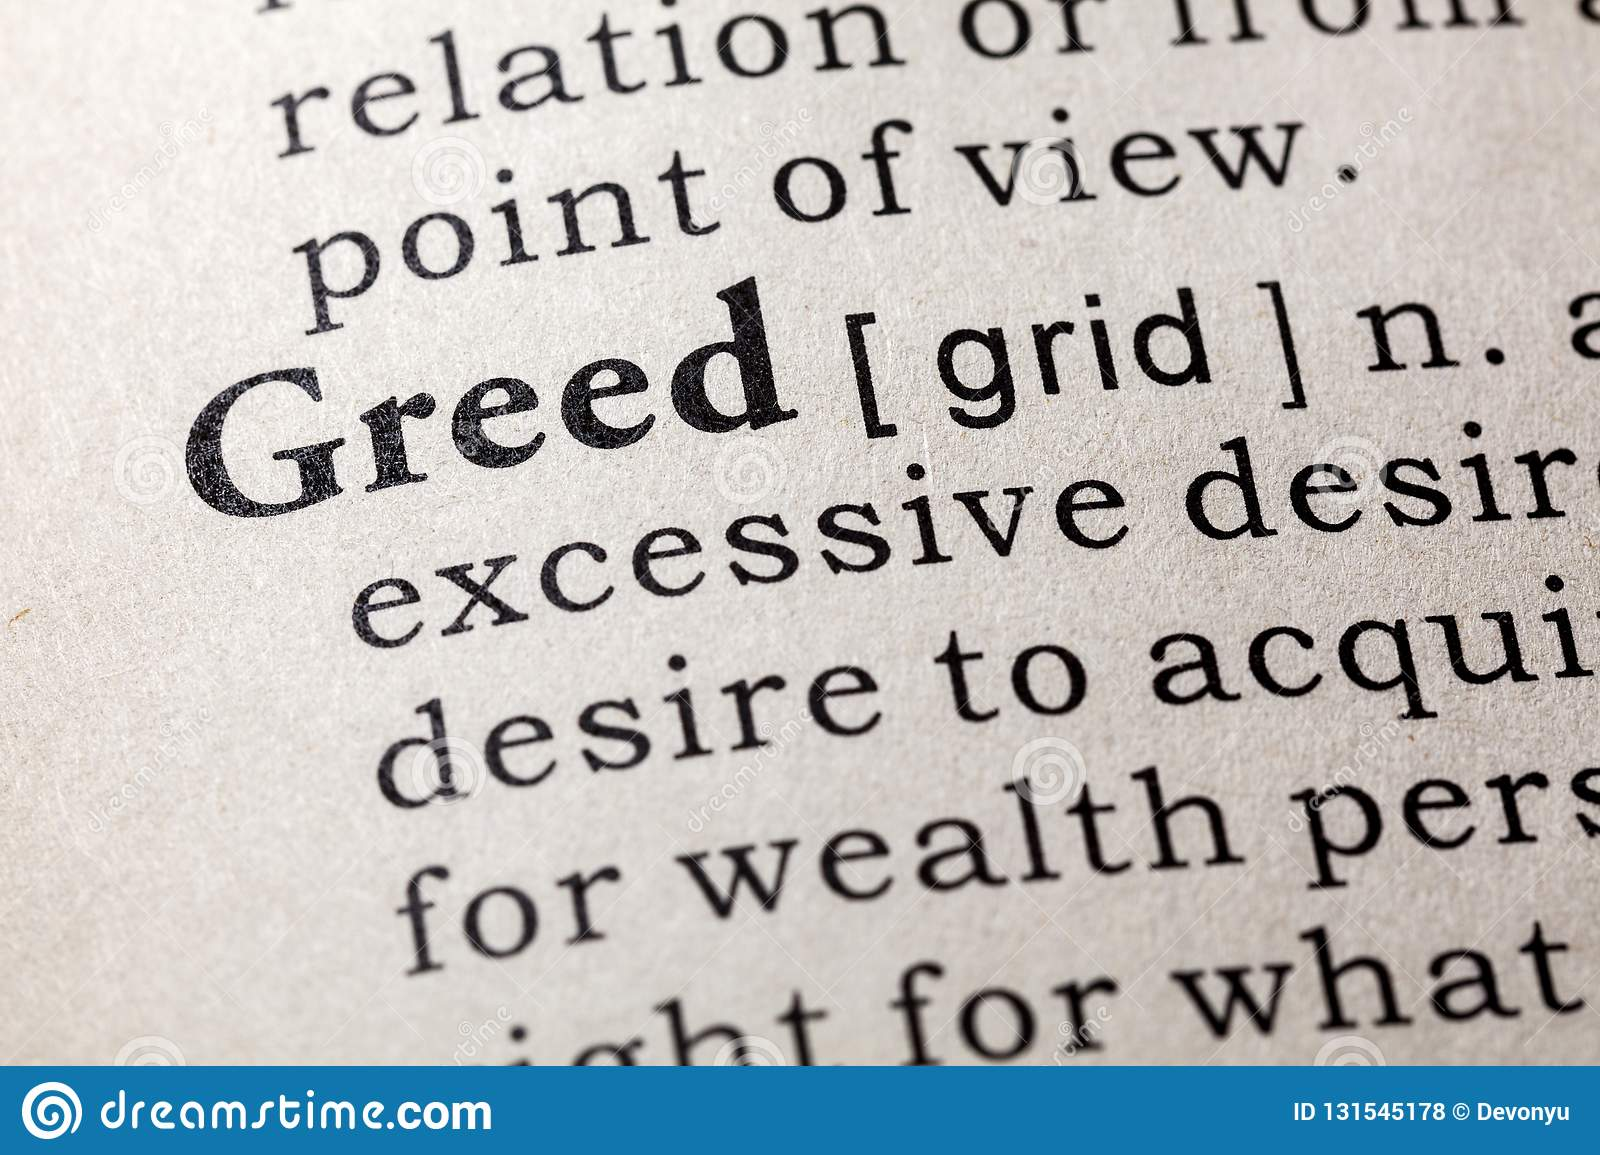 greed definition